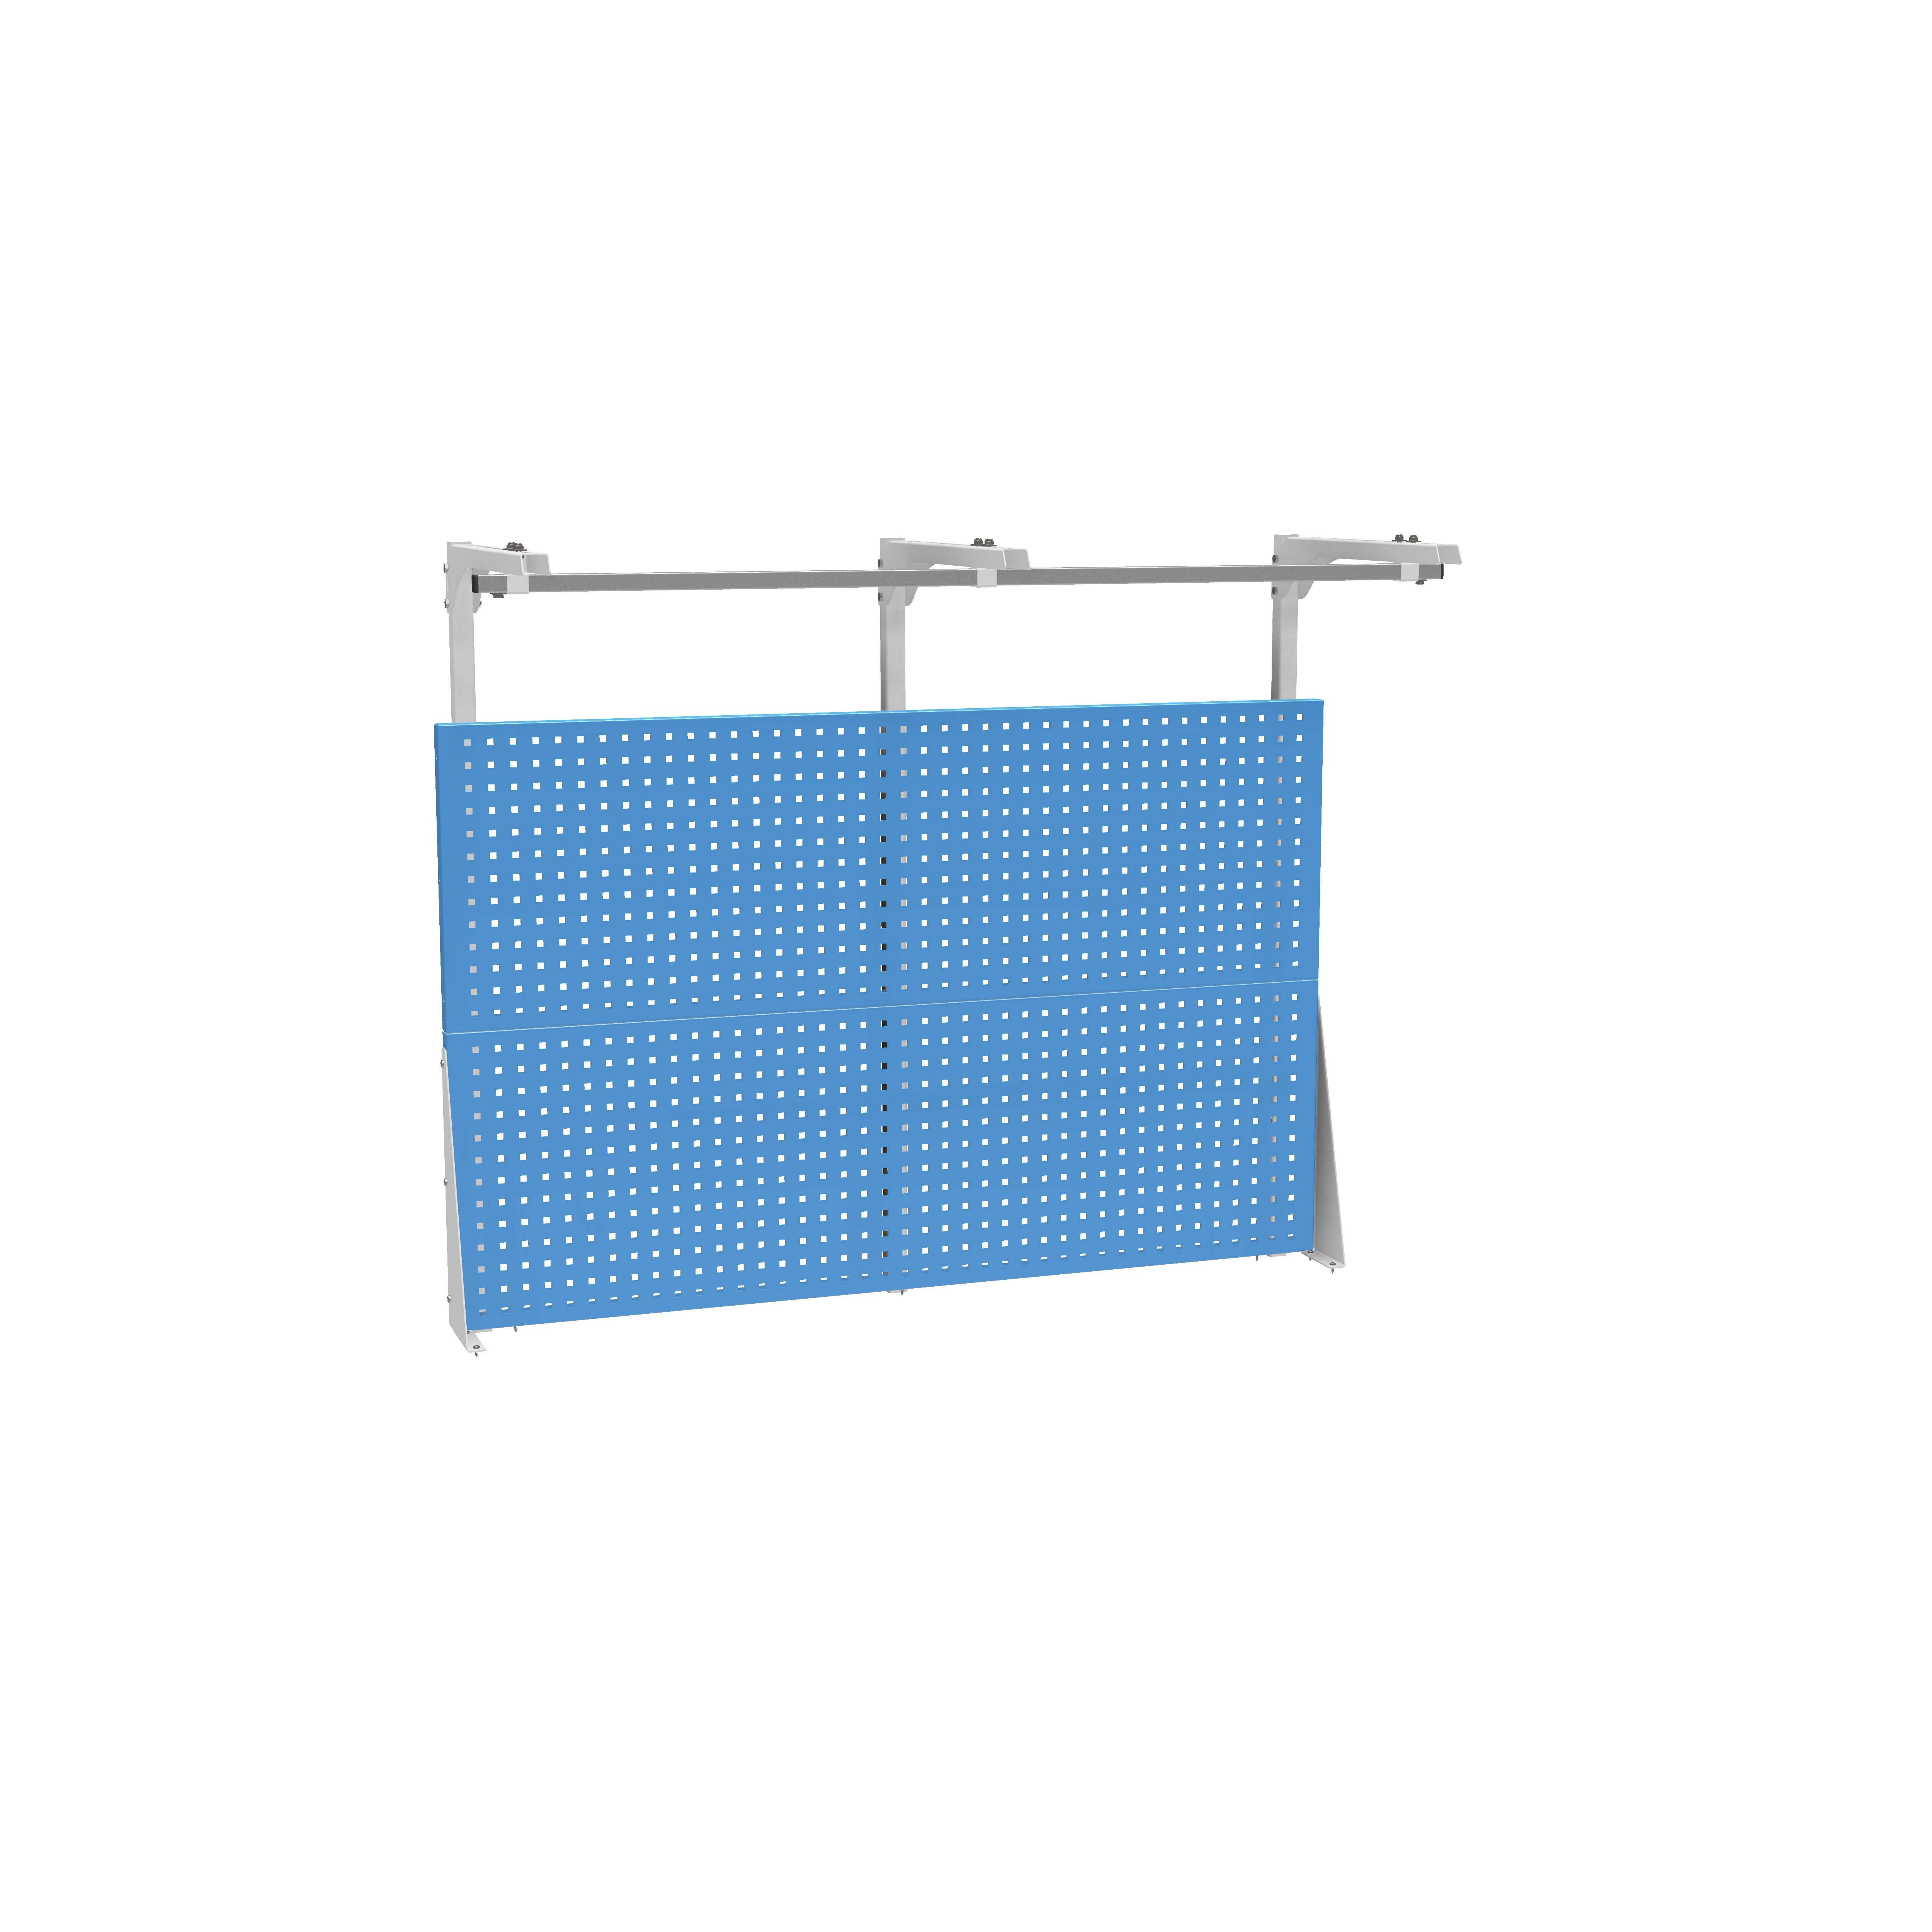 DiKom Perforated Panel VL-150-E3